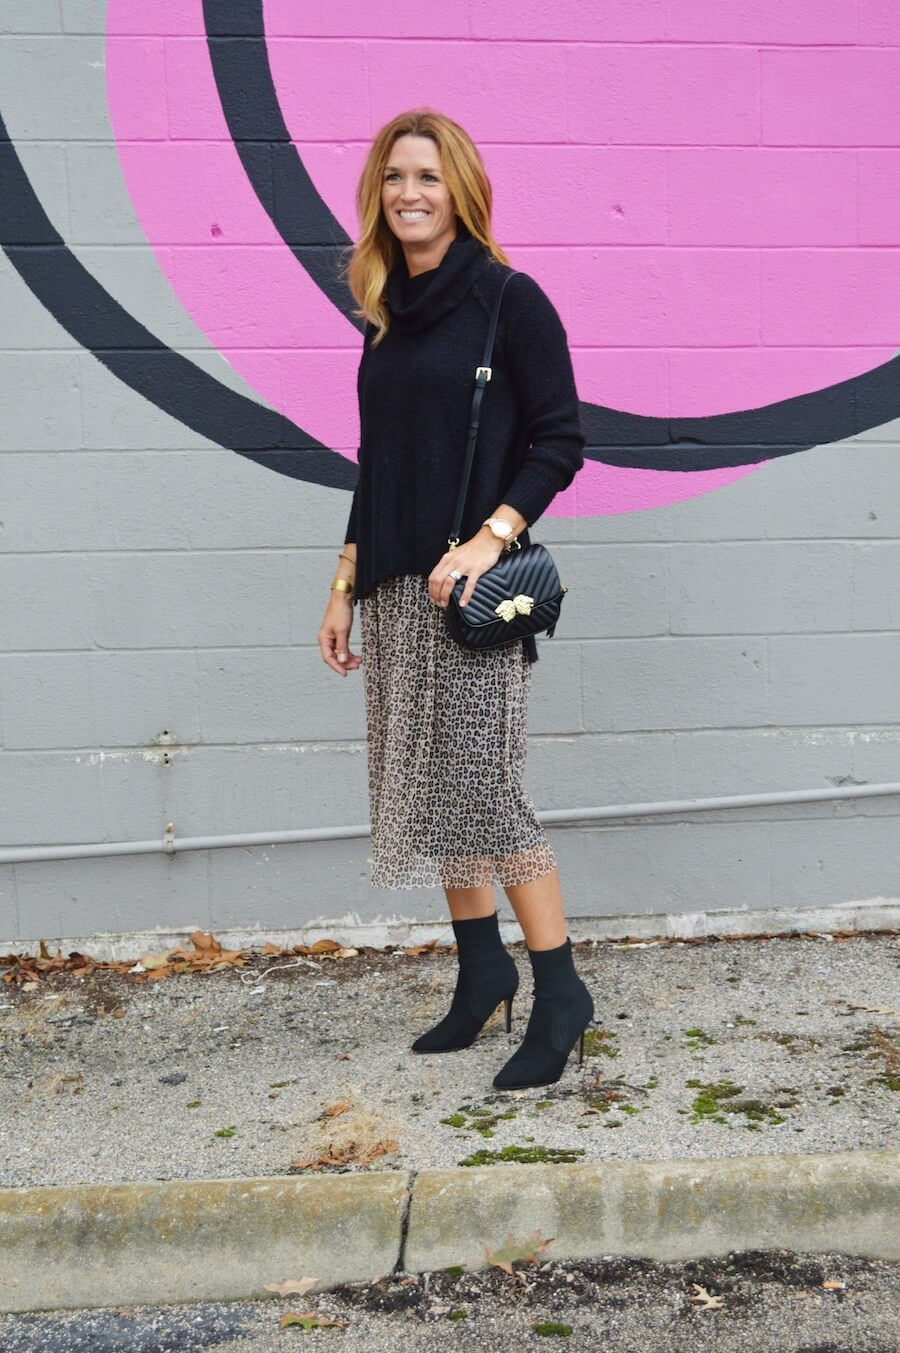 style erin heffelfinger eclectic chic mom on the street